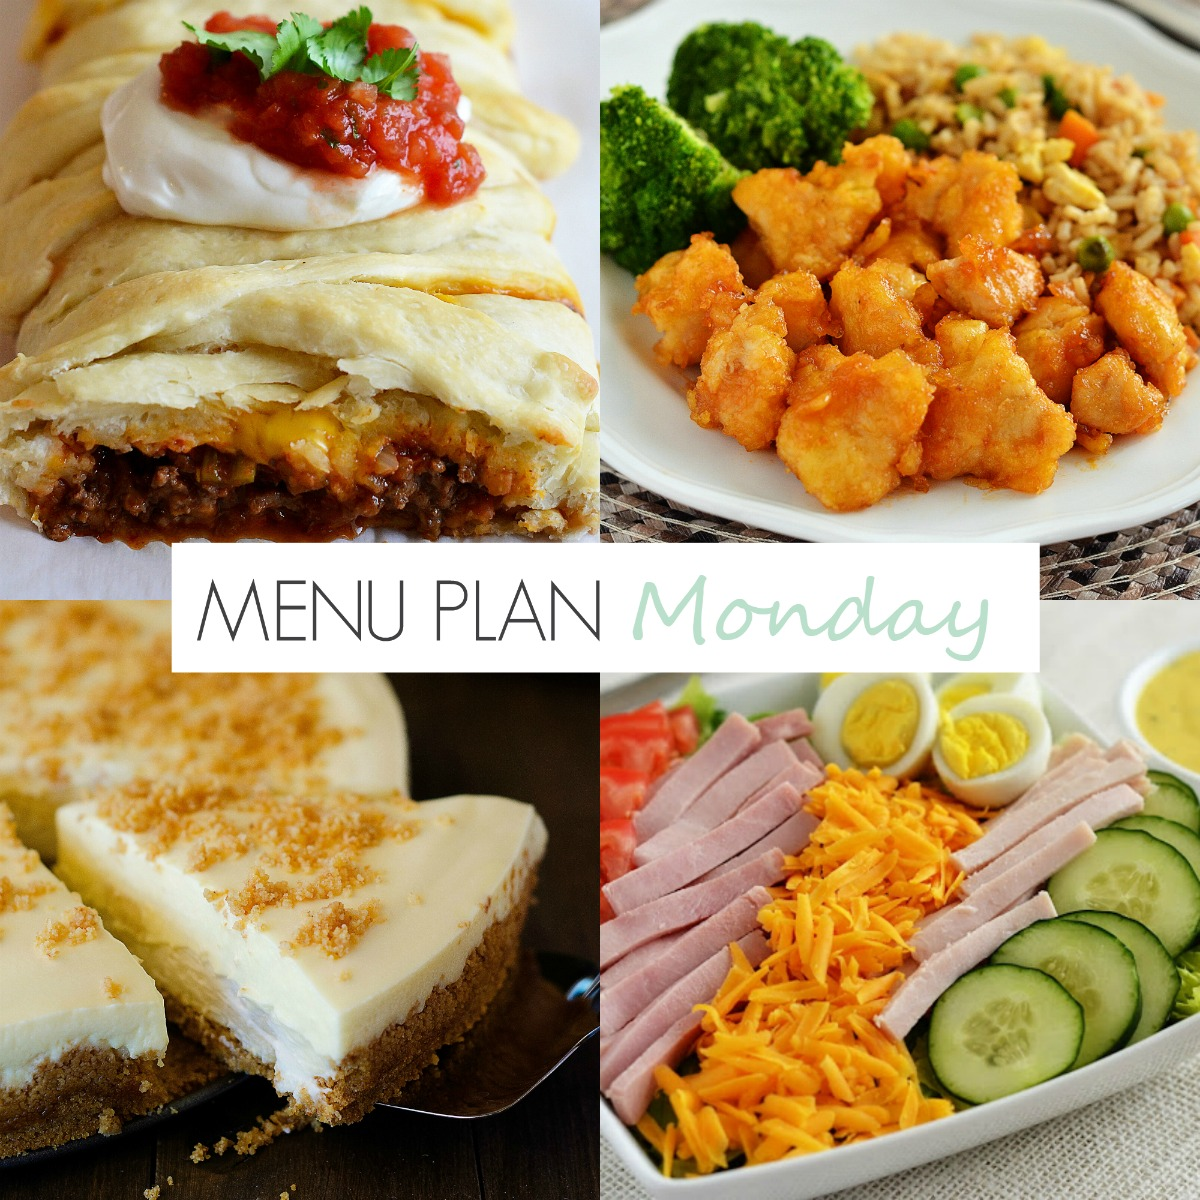 Baked sweet n sour chicken, chef salads, taco braid and more faves on Menu Plan Monday #151